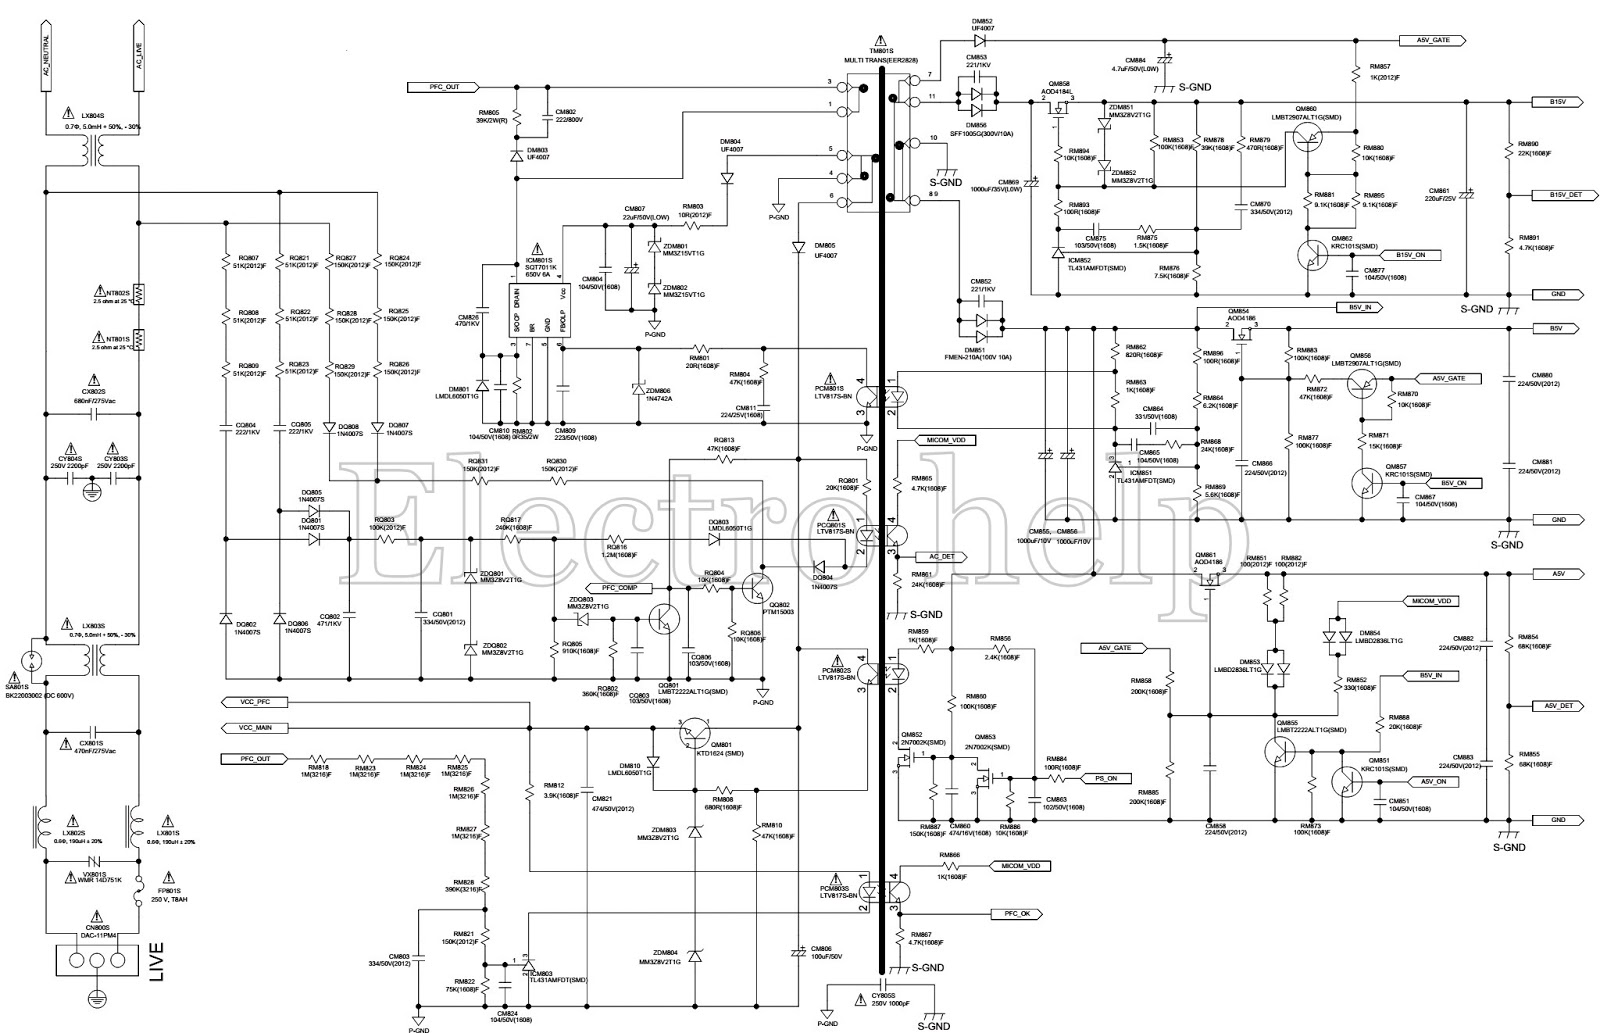 Tv Power Supply Circuit Diagrams Guide And Troubleshooting Of Samsung Schematic Lcd Smps Bn44 00508b 00118d Diagram Pdf Led